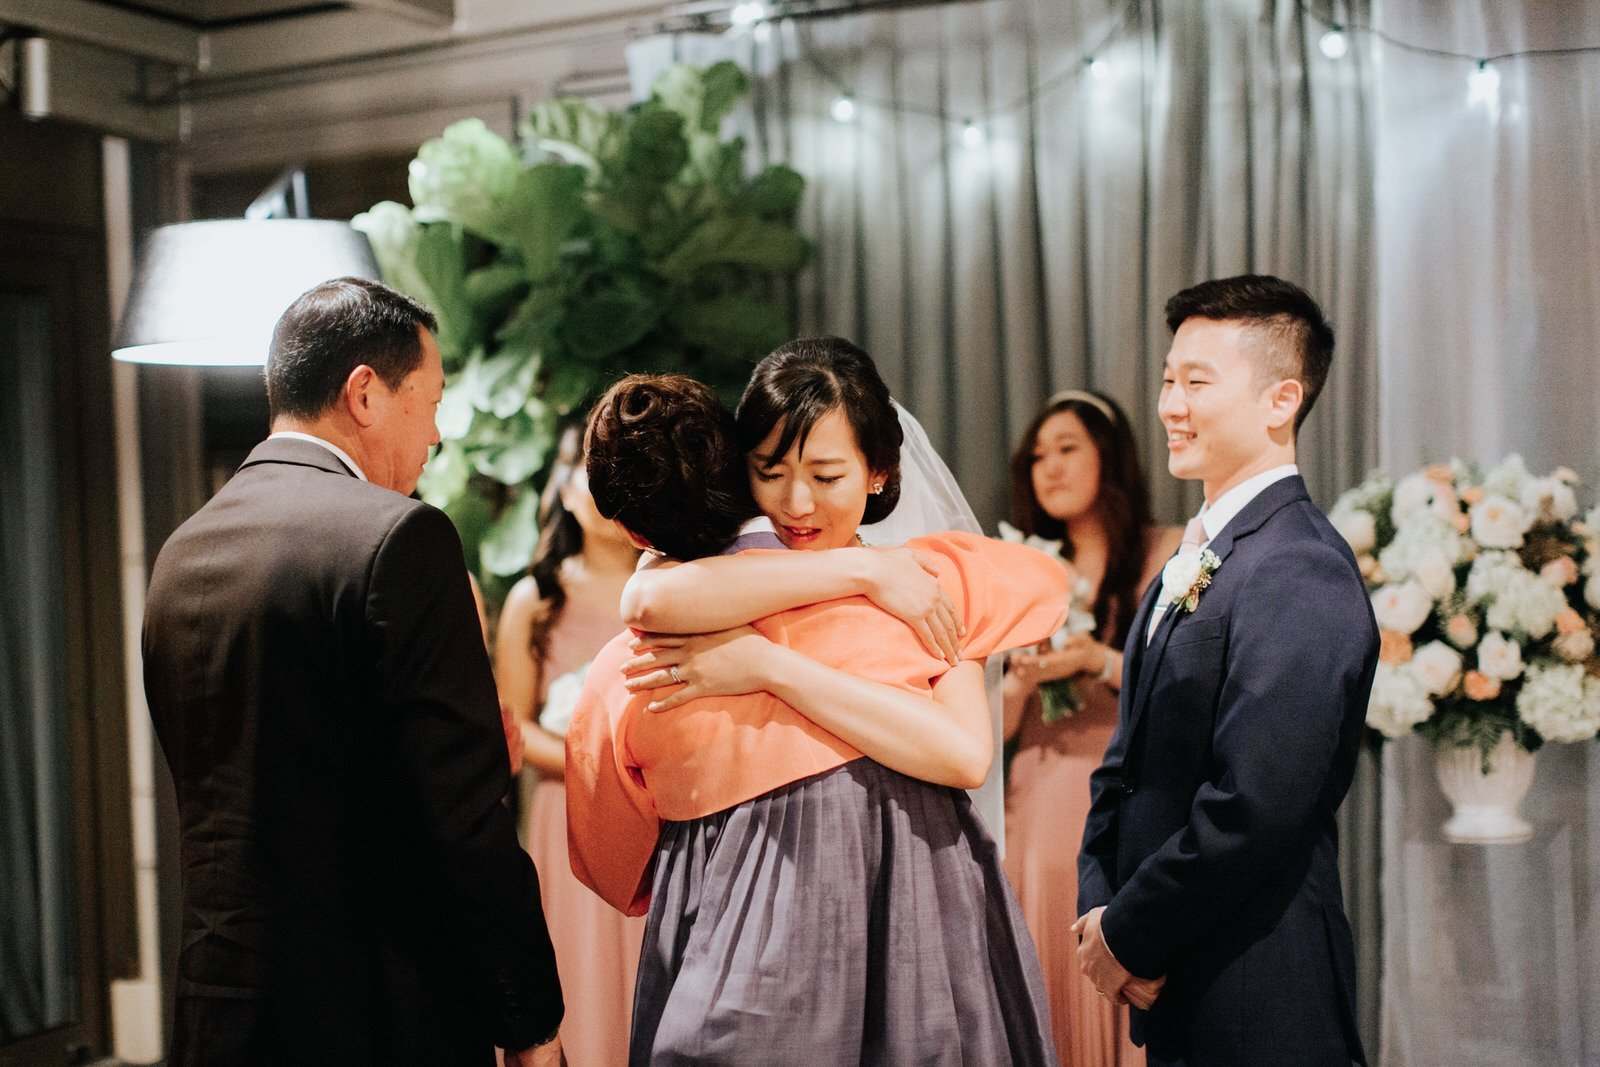 The bride hugs her mom during the ceremony at hotel 1000